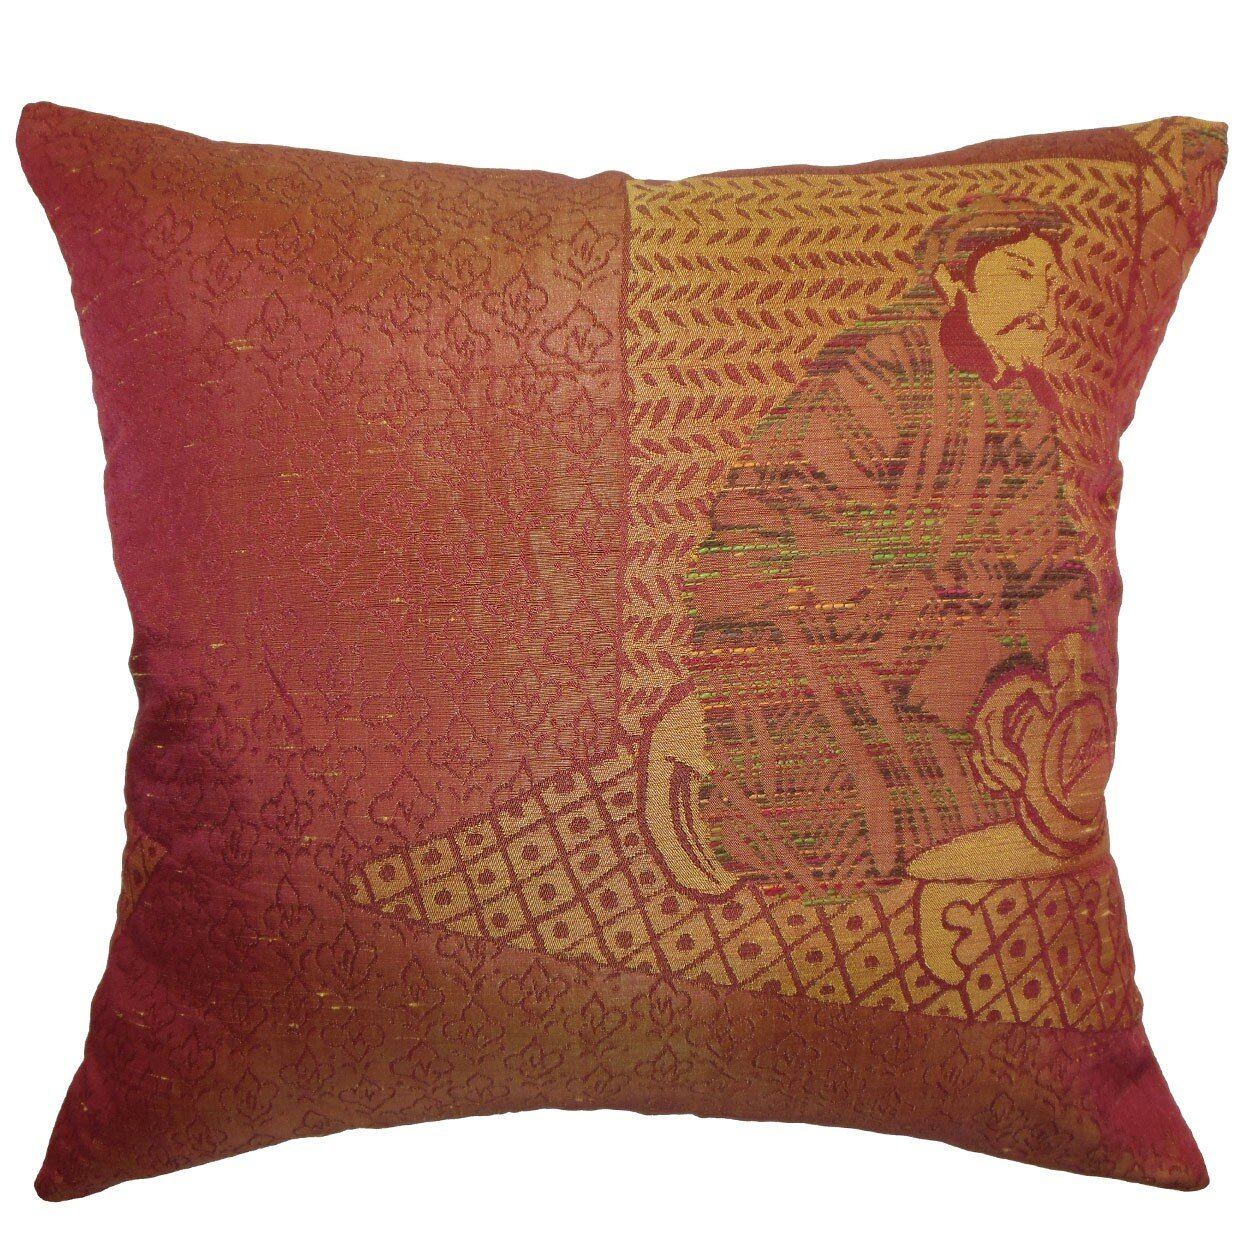 The Pillow Collection Harb Traditional Throw Pillow